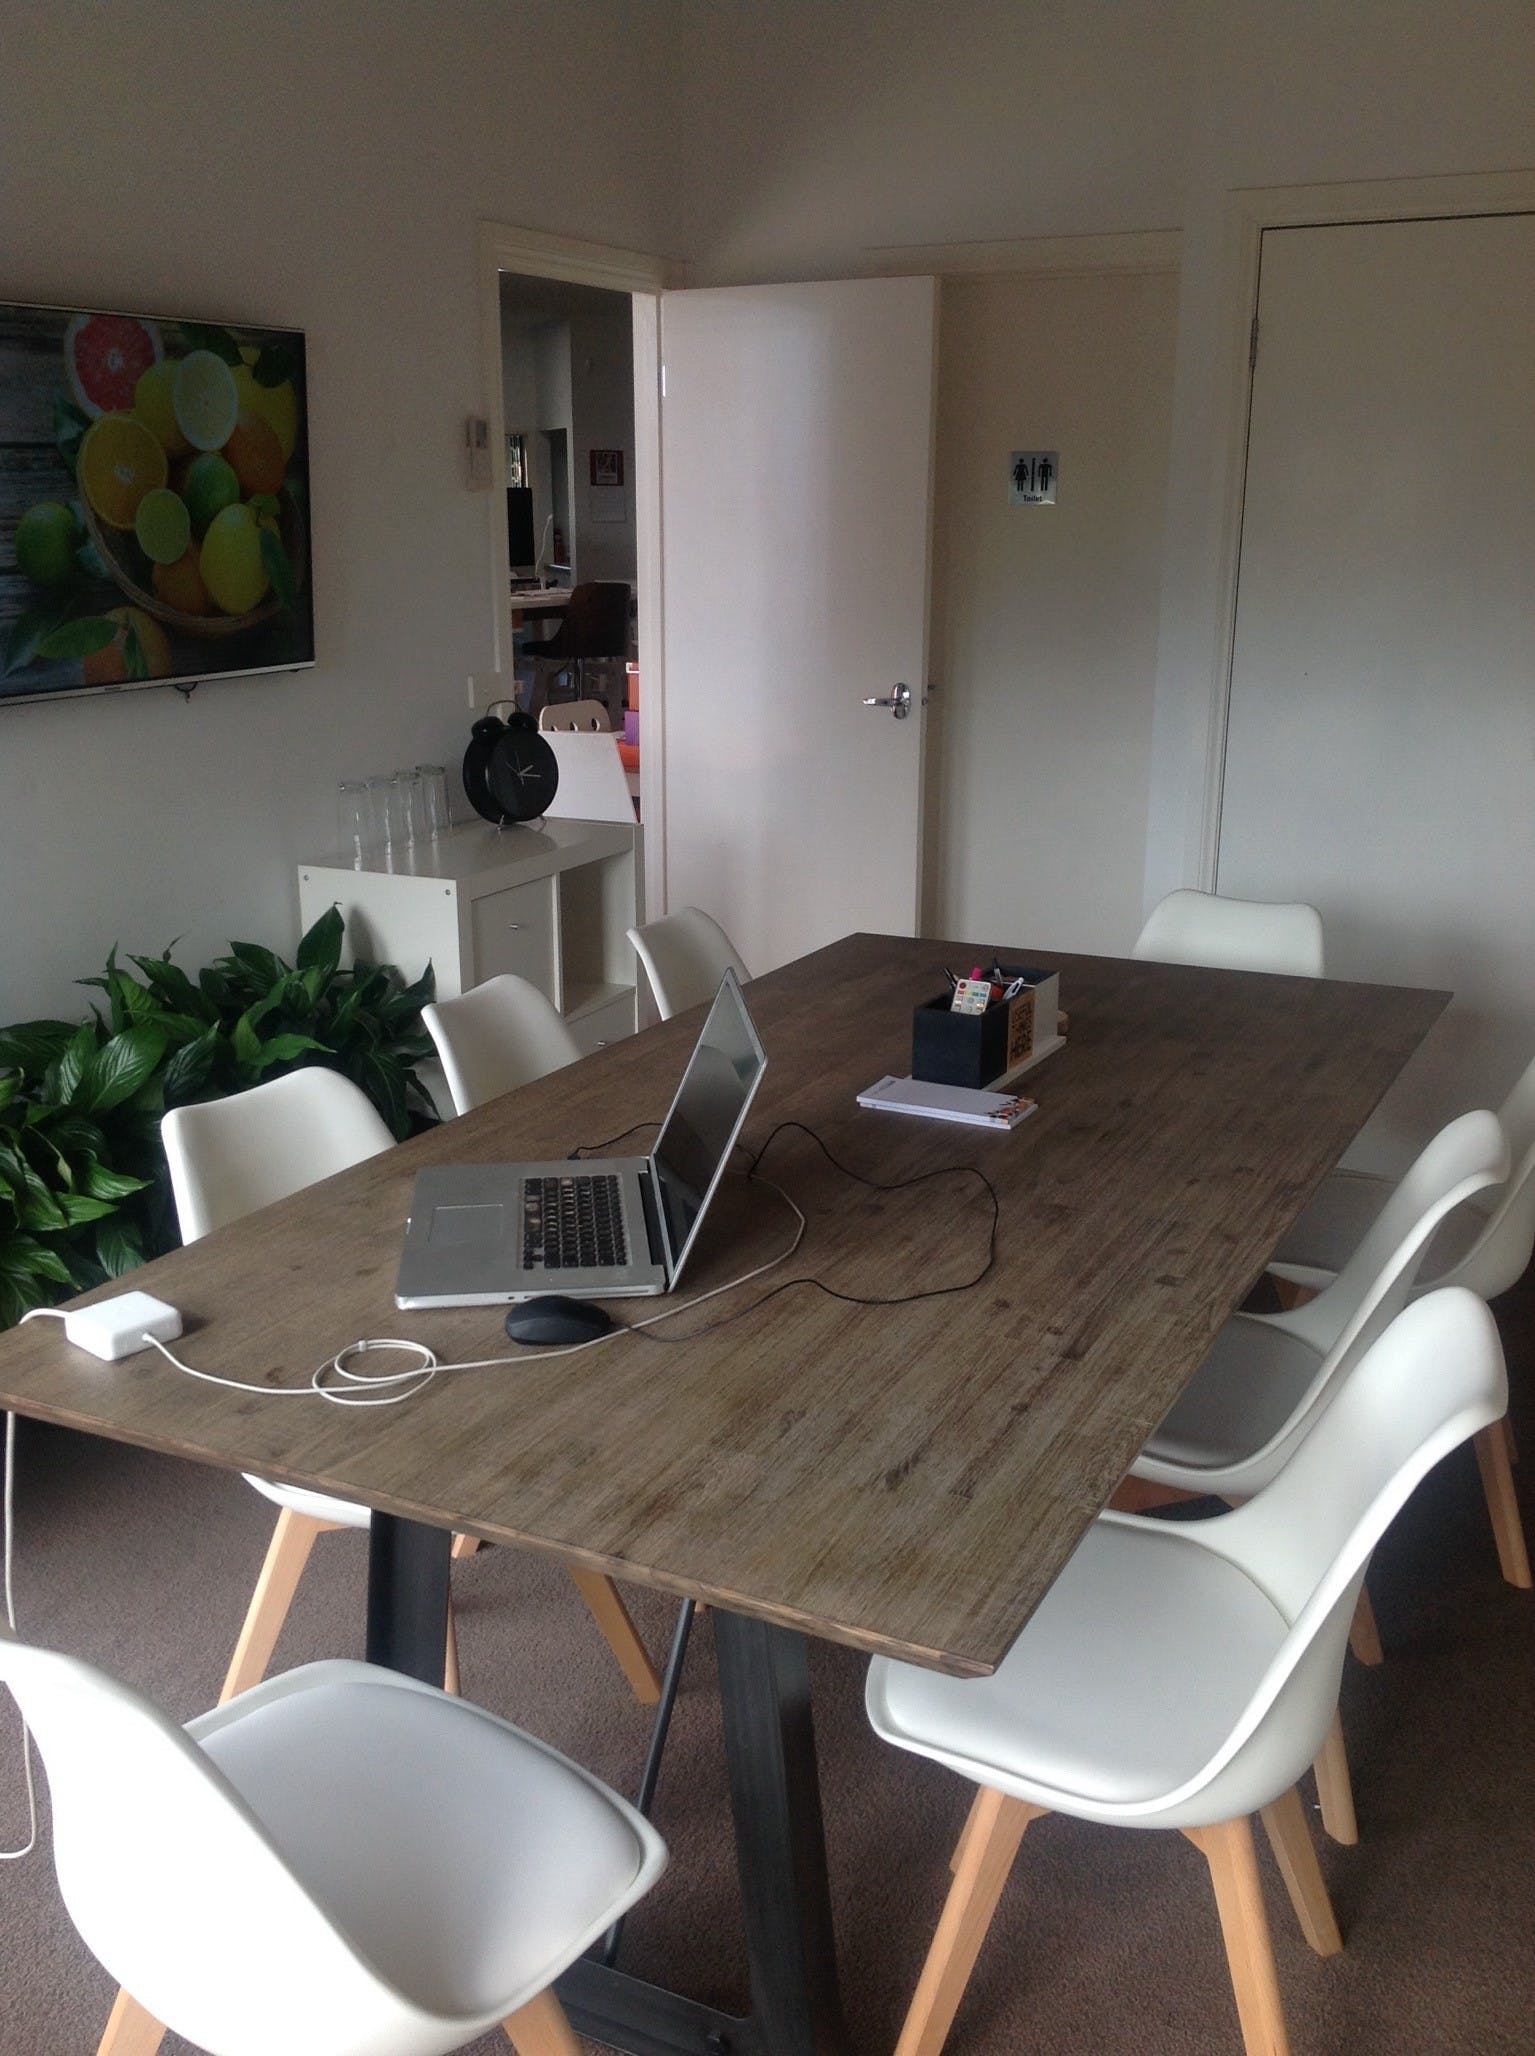 Meeting room at Grenco, image 1